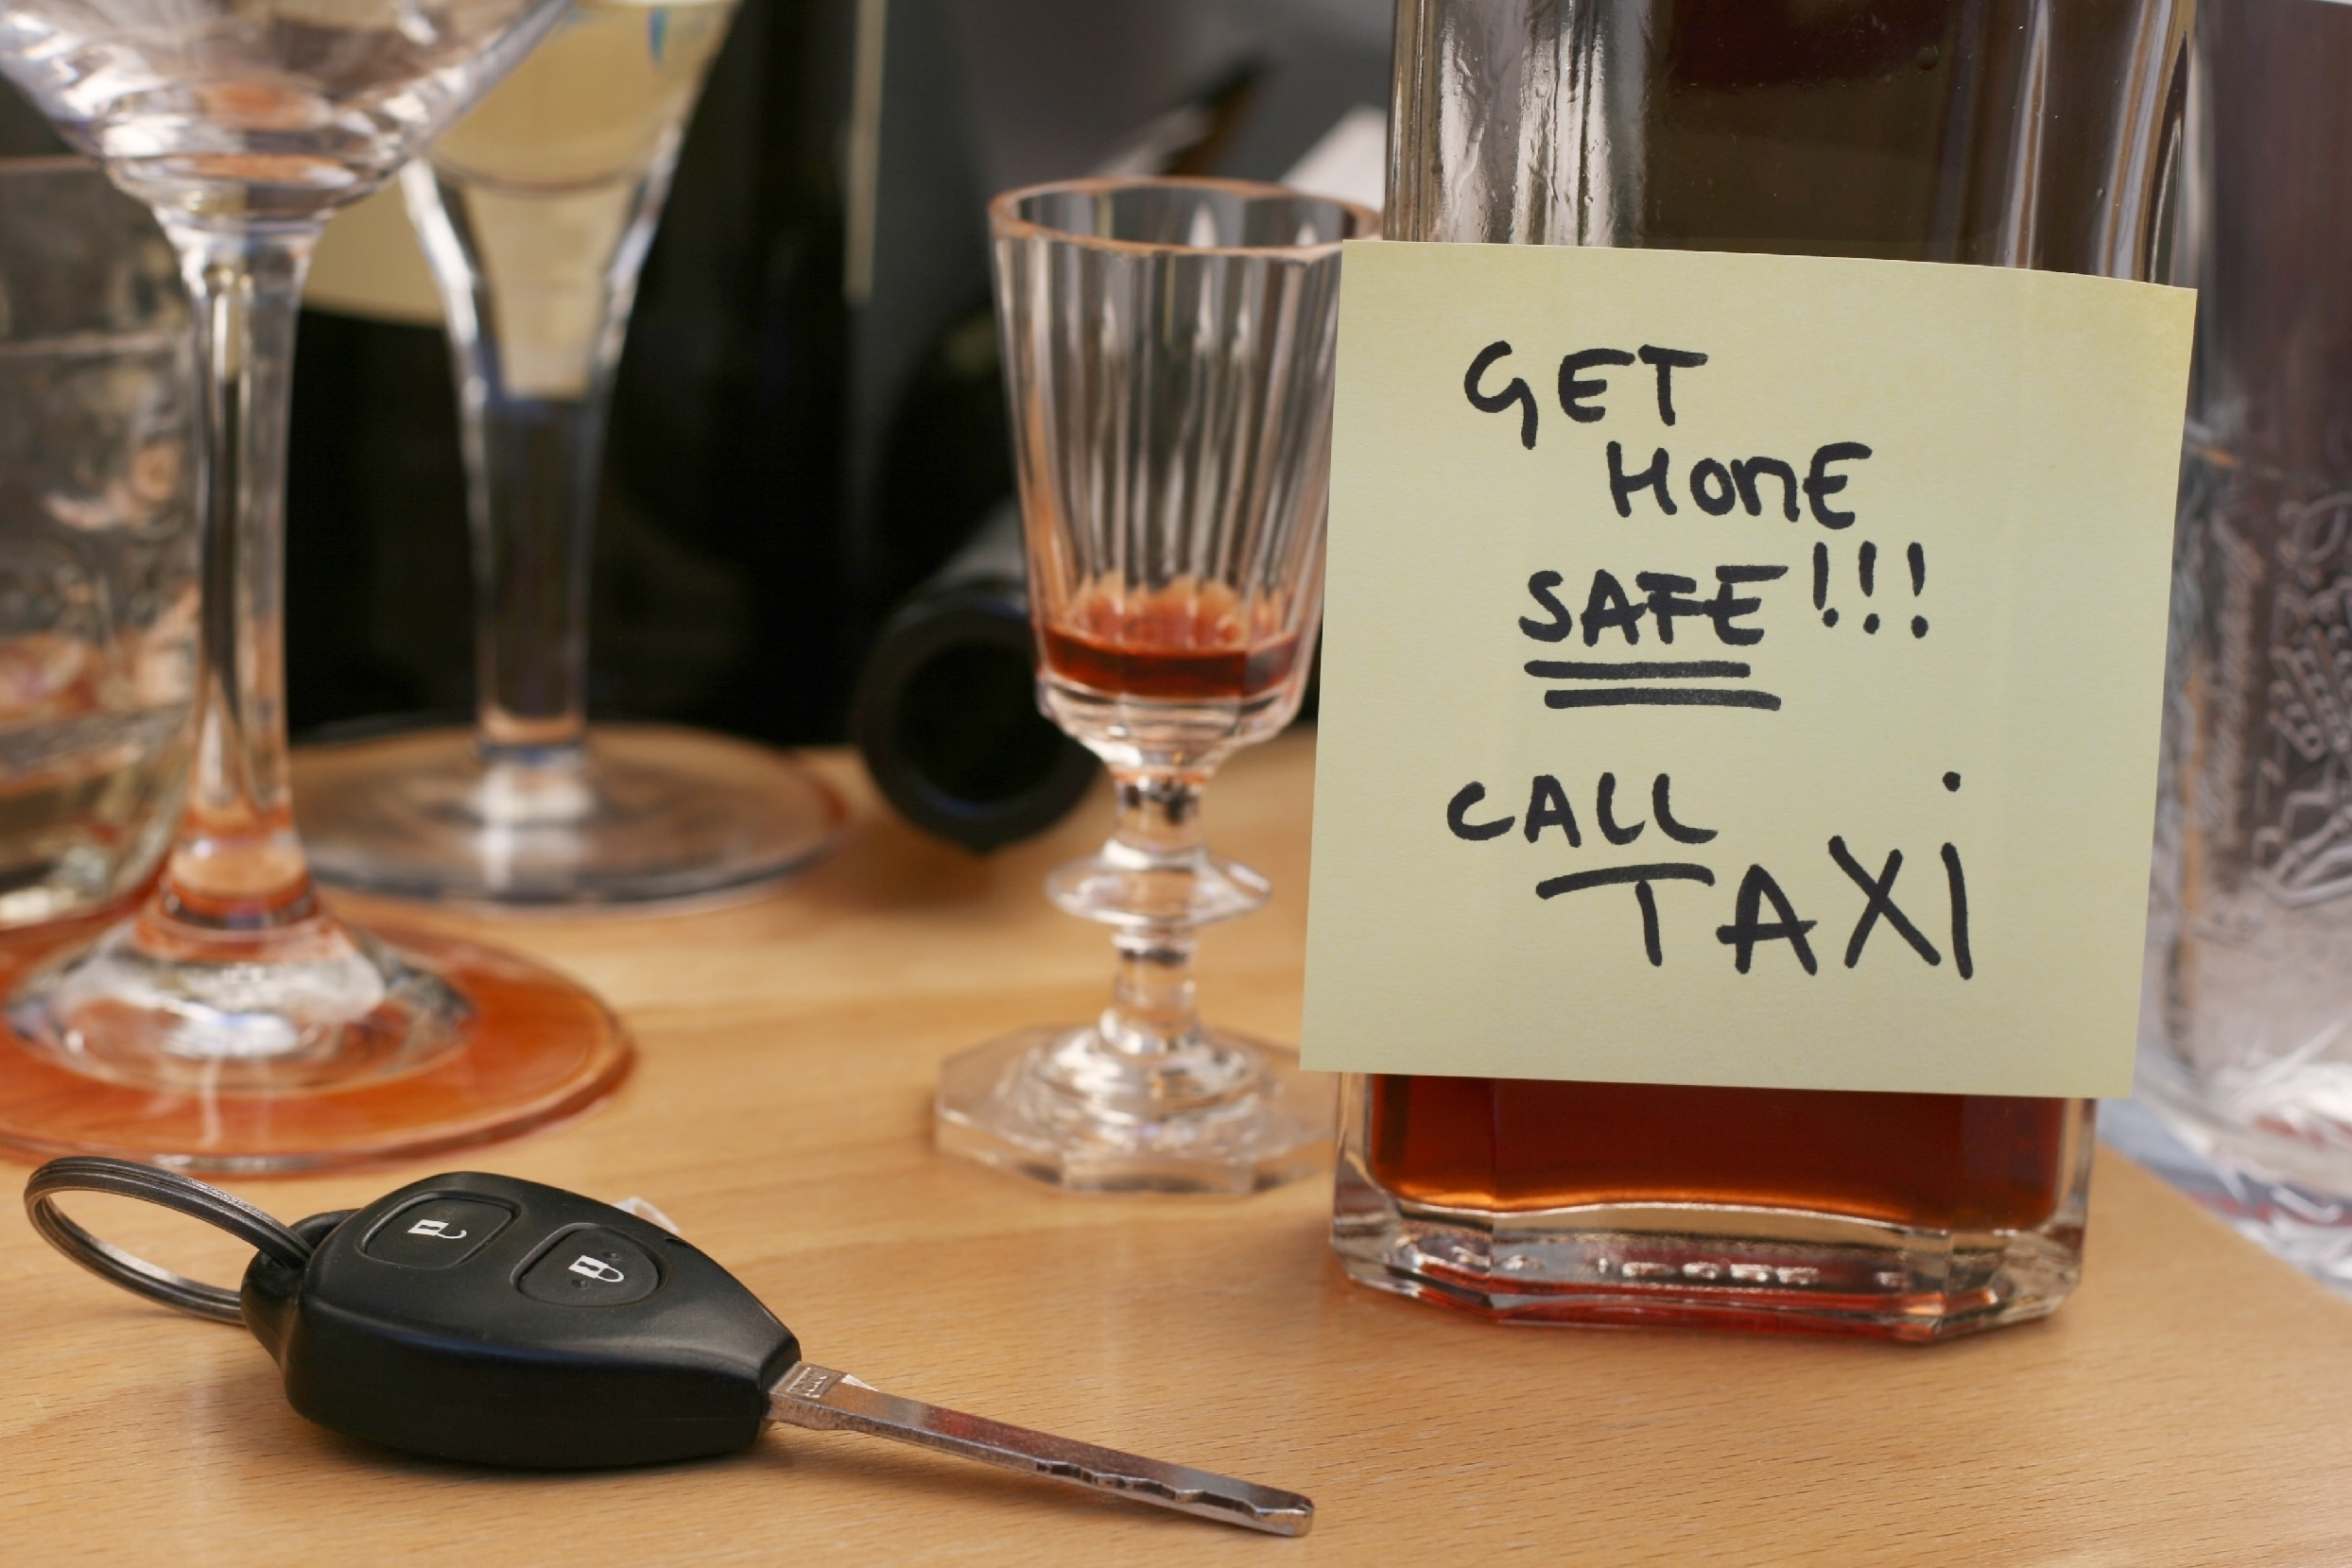 2 Recent Super Extreme DUI cases in Tucson